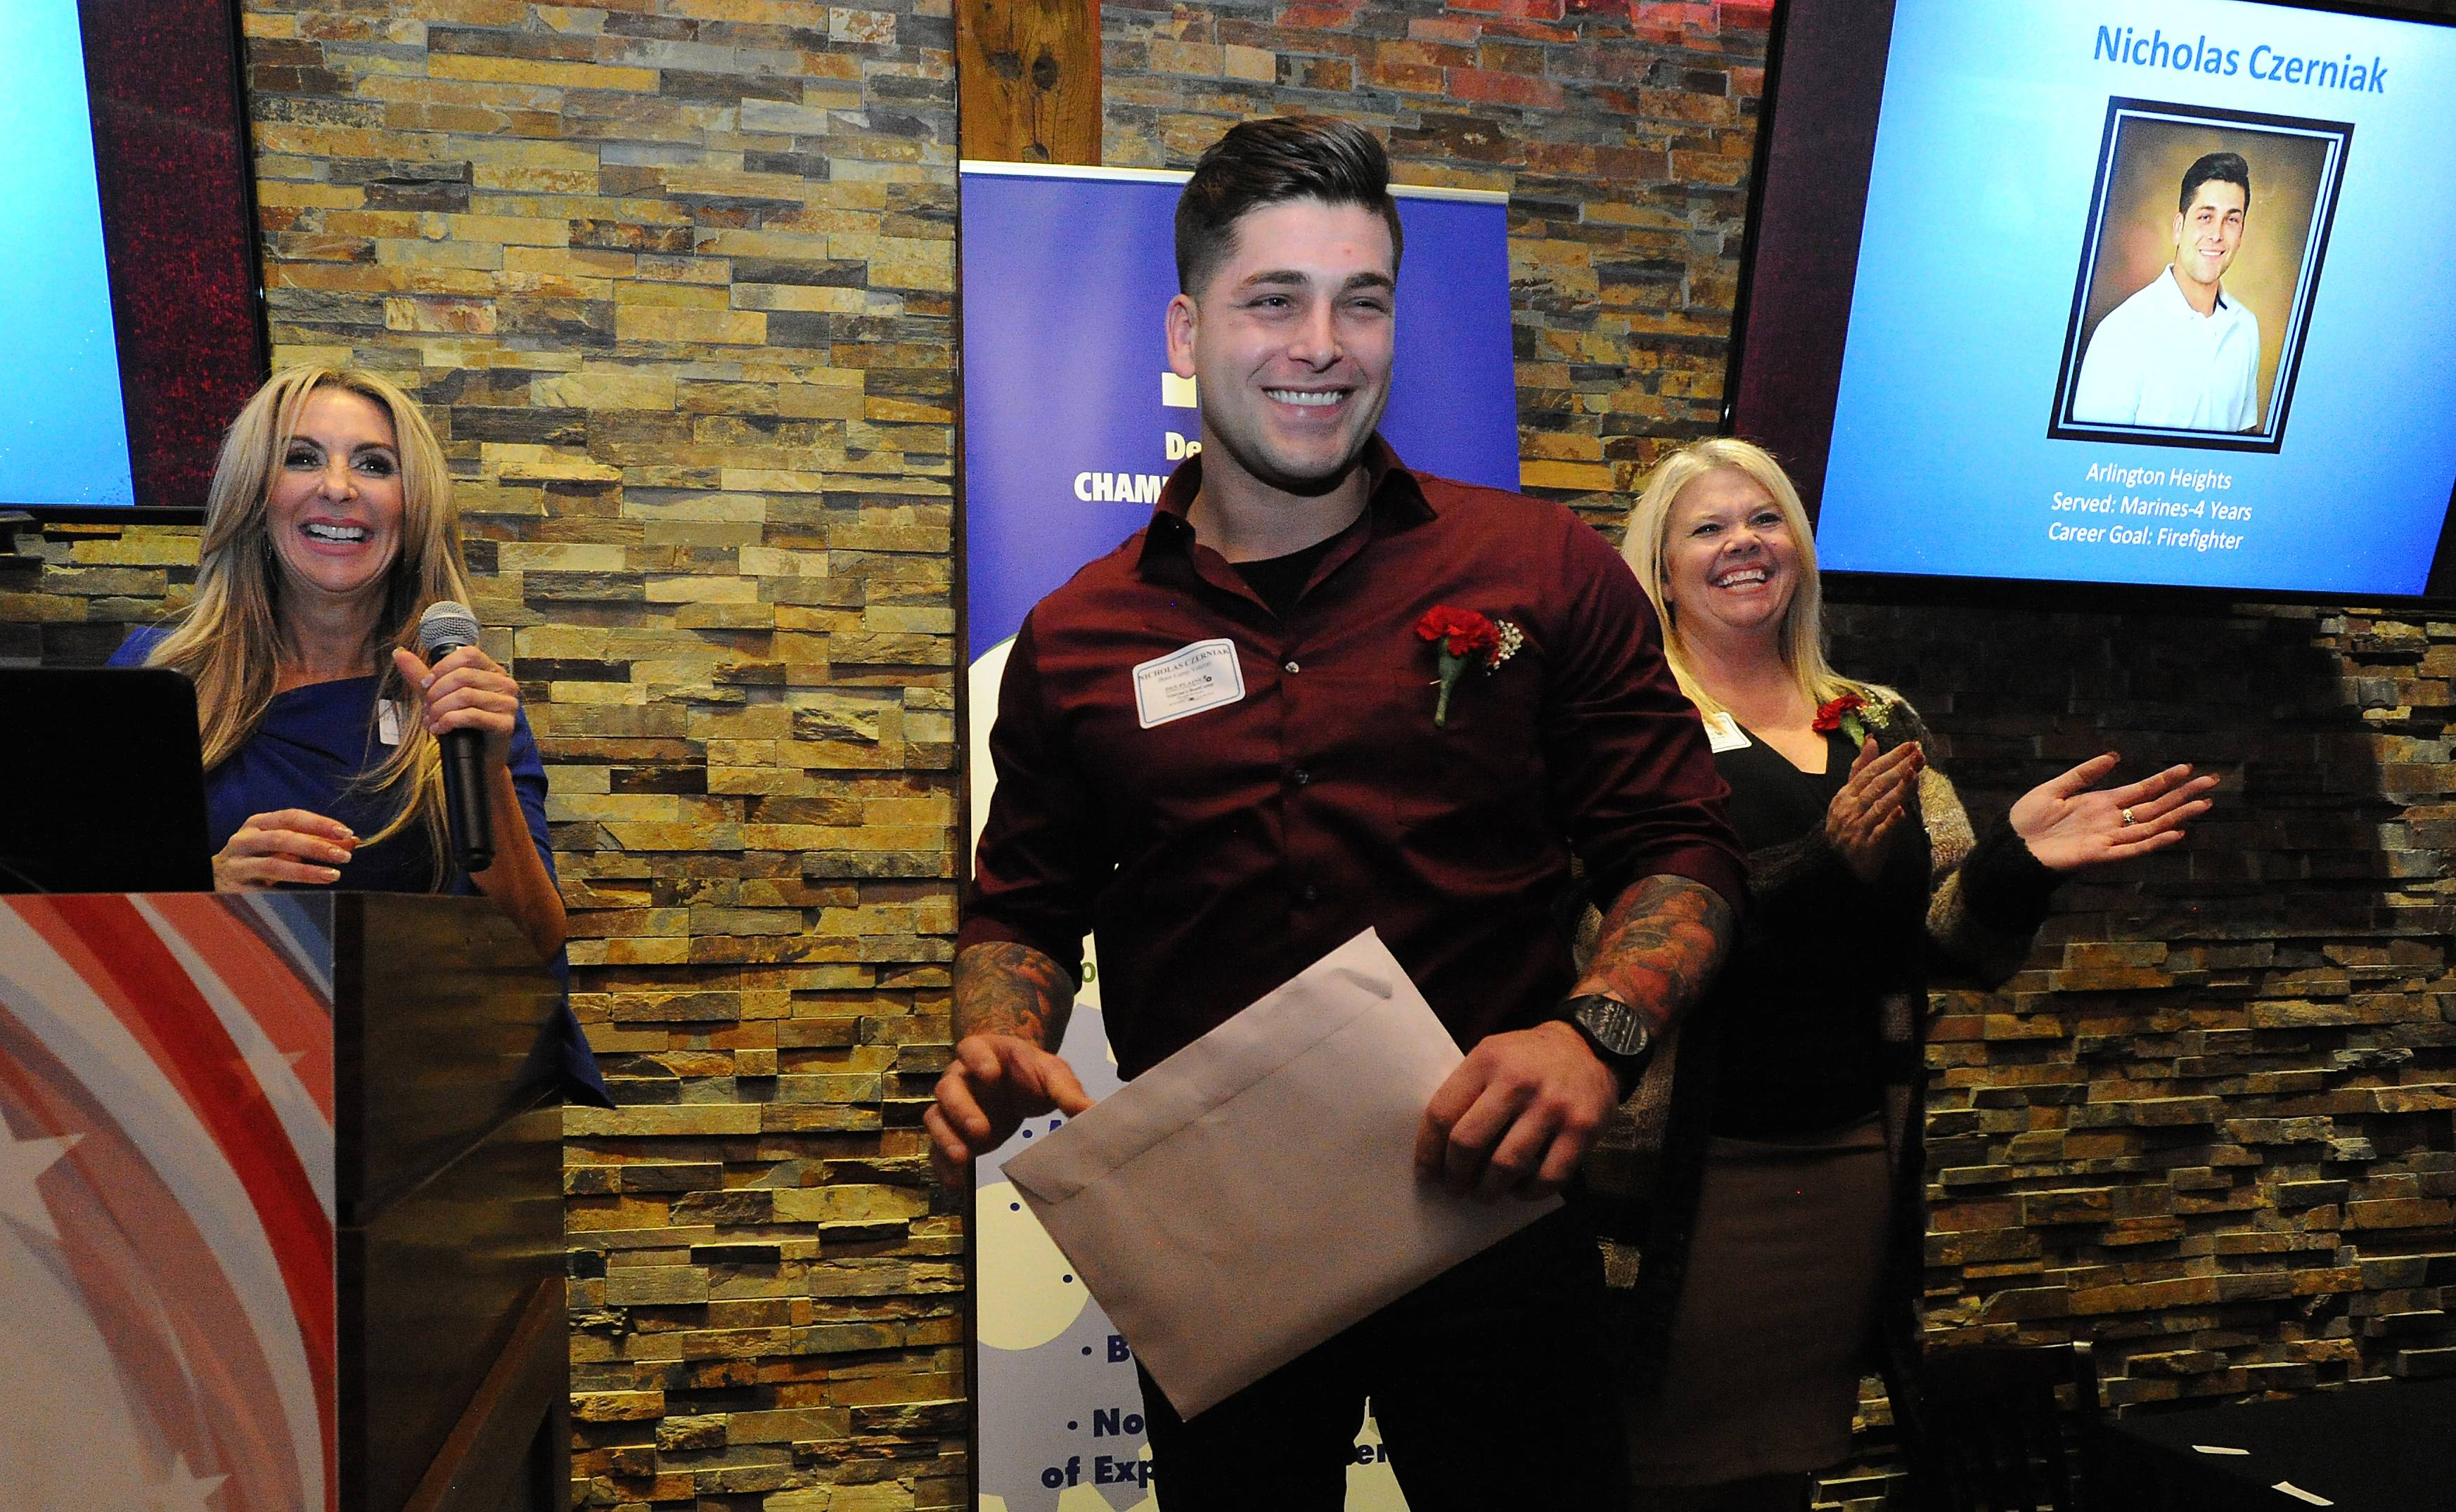 Andrea Biwer, executive director of the chamber of commerce, left, and Marne Deithorn, with the Rivers Casino human resources department honor Nicholas Czerniak of Arlington Heights, who served in the Marines, at the Des Plaines Chamber of Commerce Veterans ceremony in Rosemont Thursday.